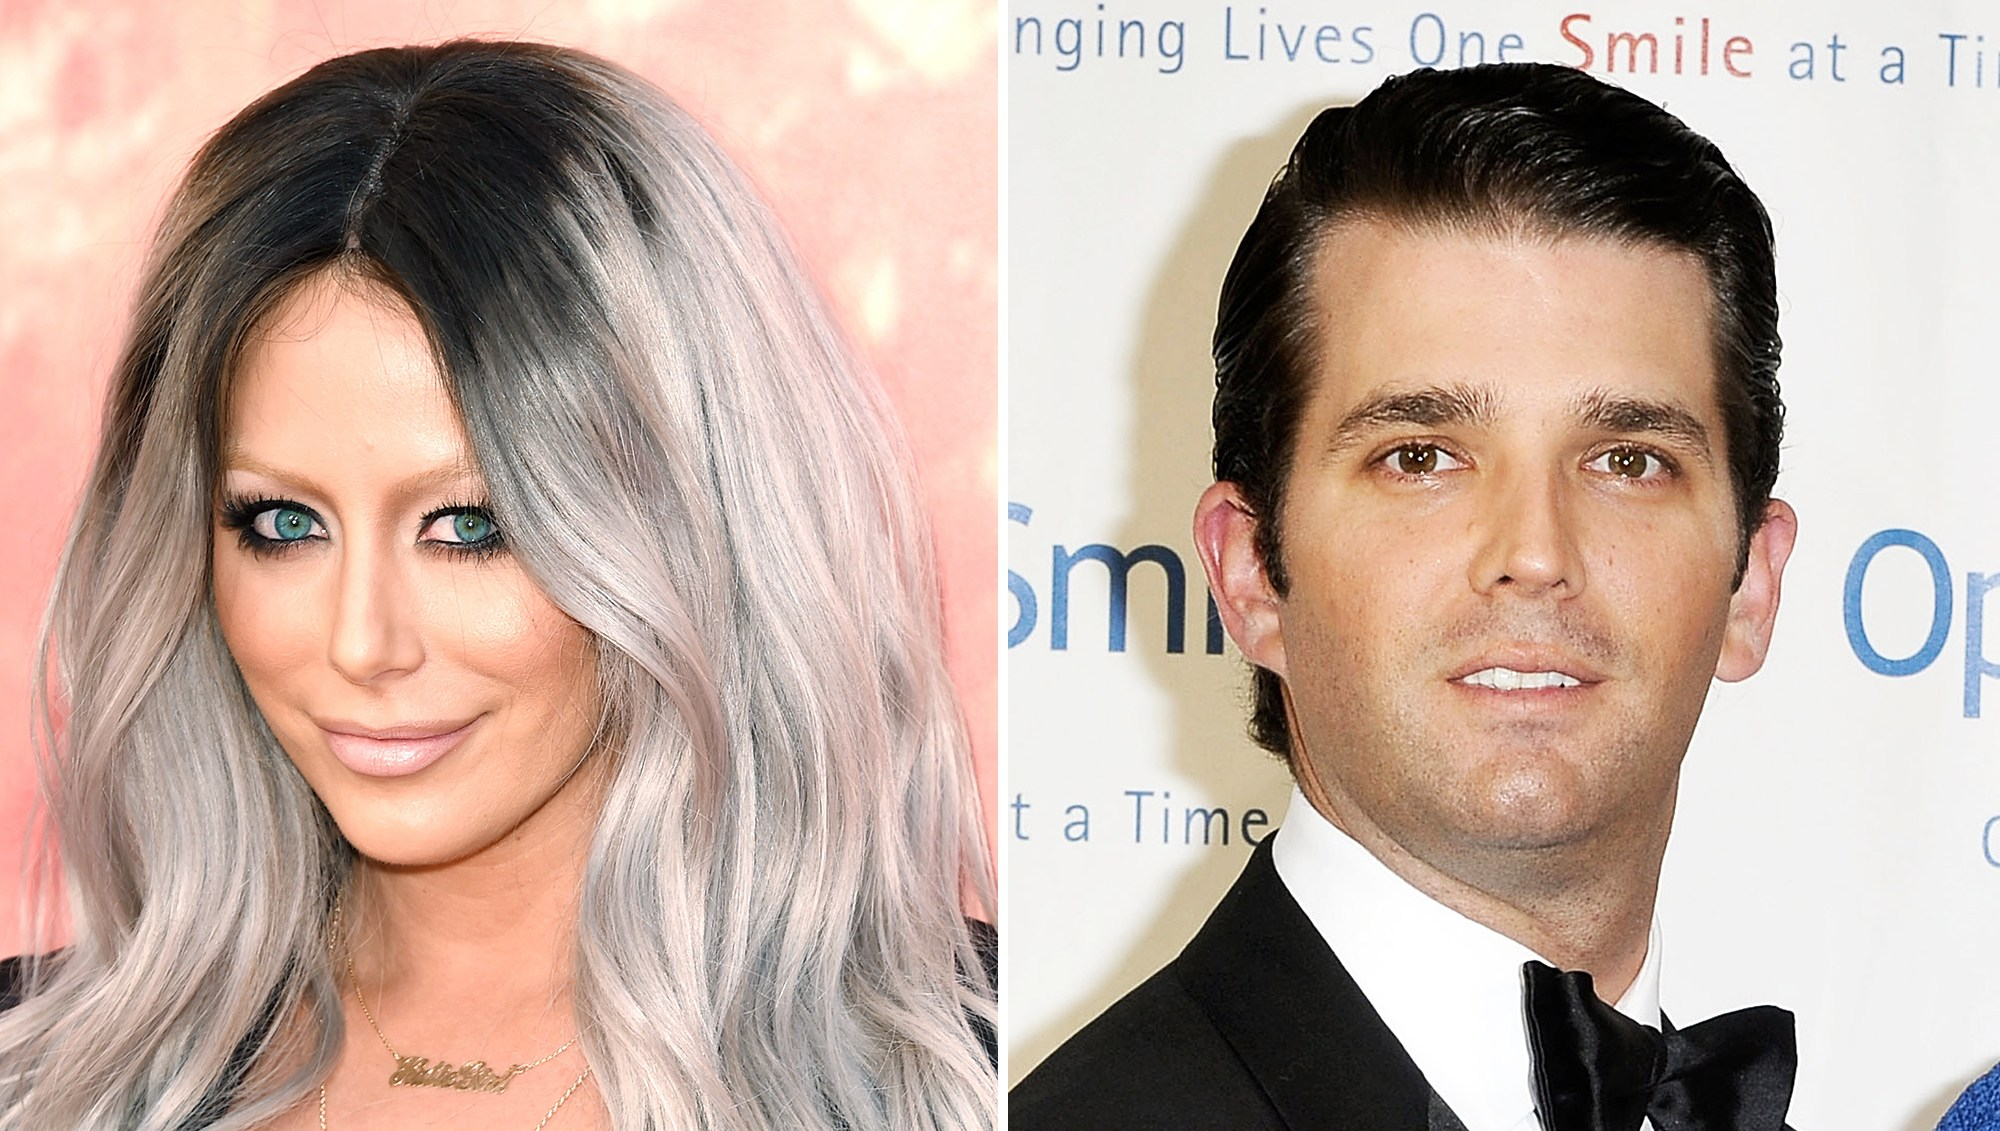 Aubrey O'Day Talked Donald Trump Jr Affair on Podcast in 2012